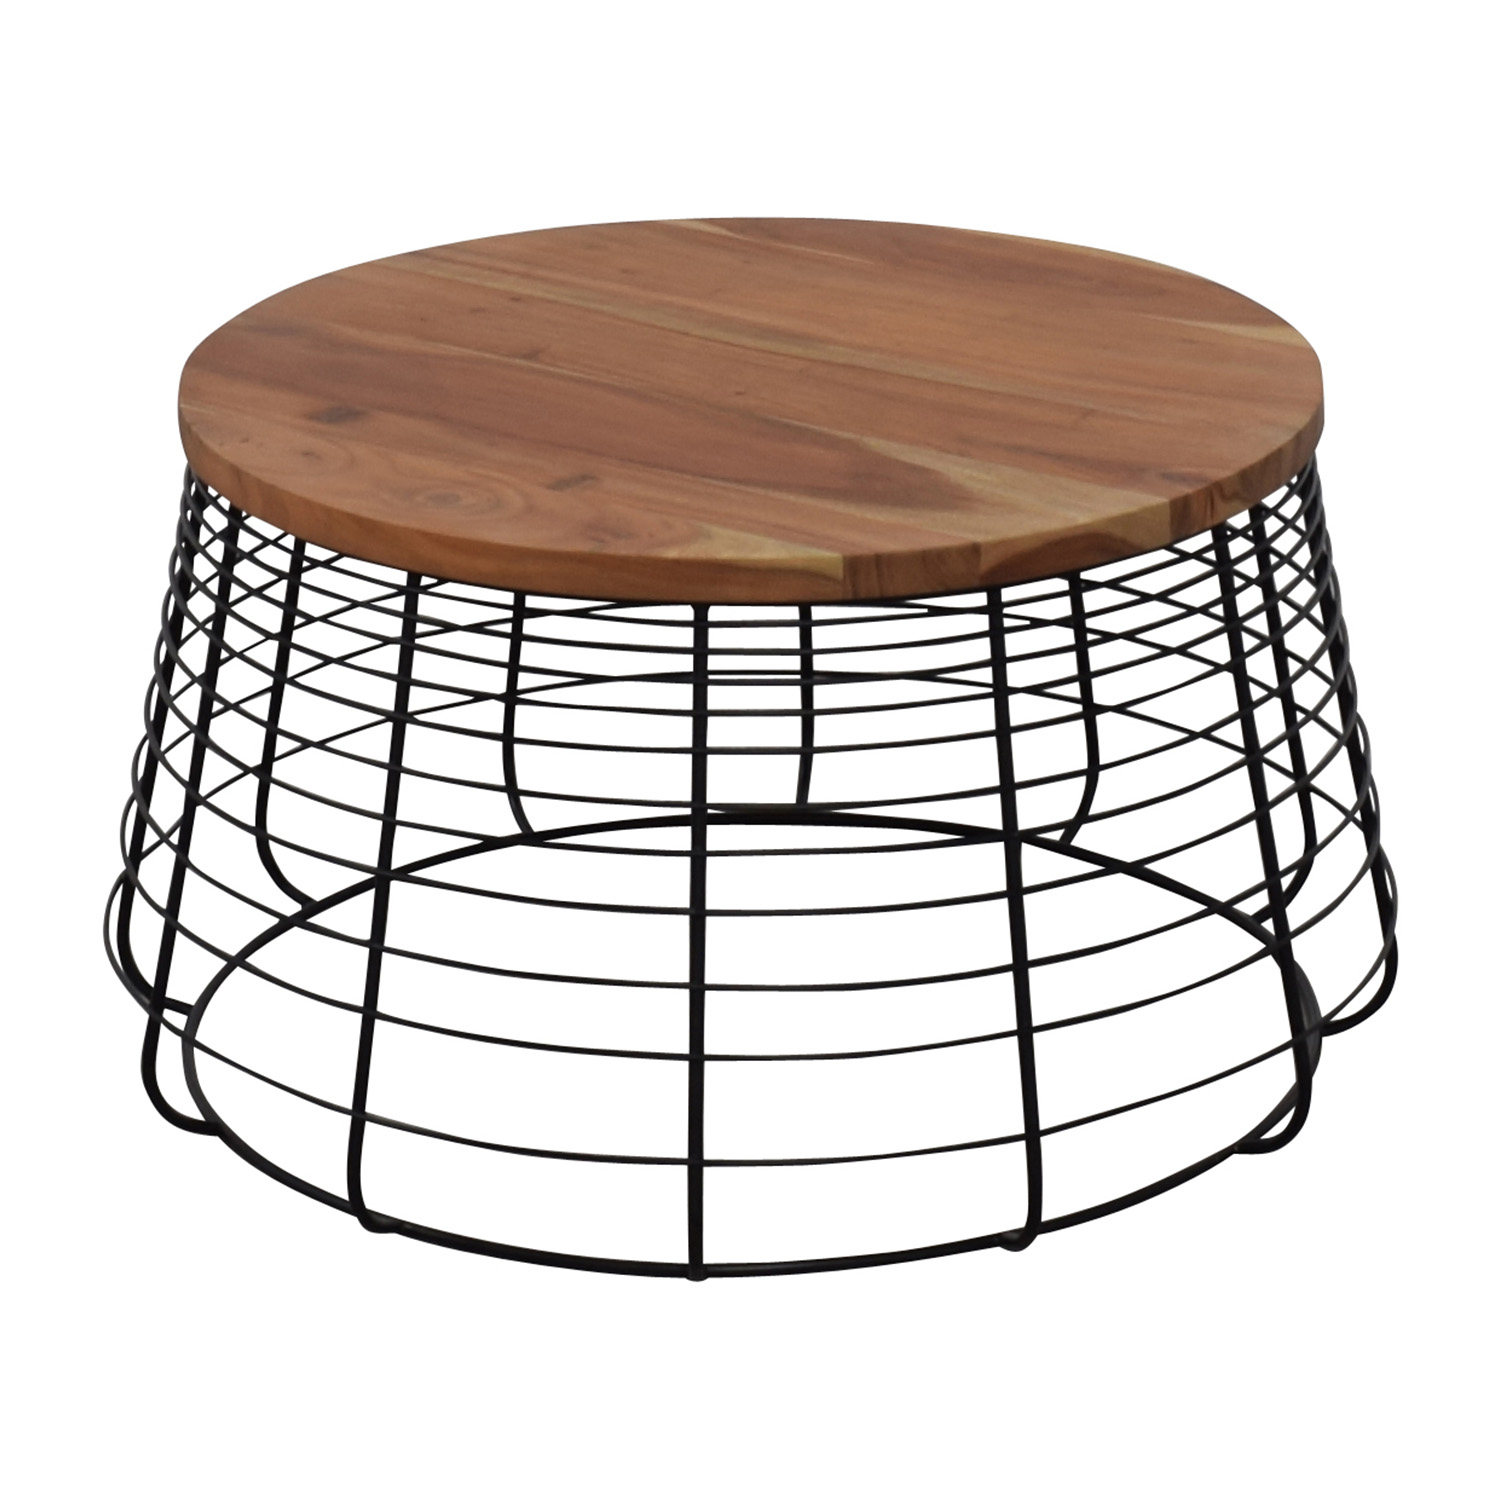 CB2 CB2 Round Wire Coffee Table for sale